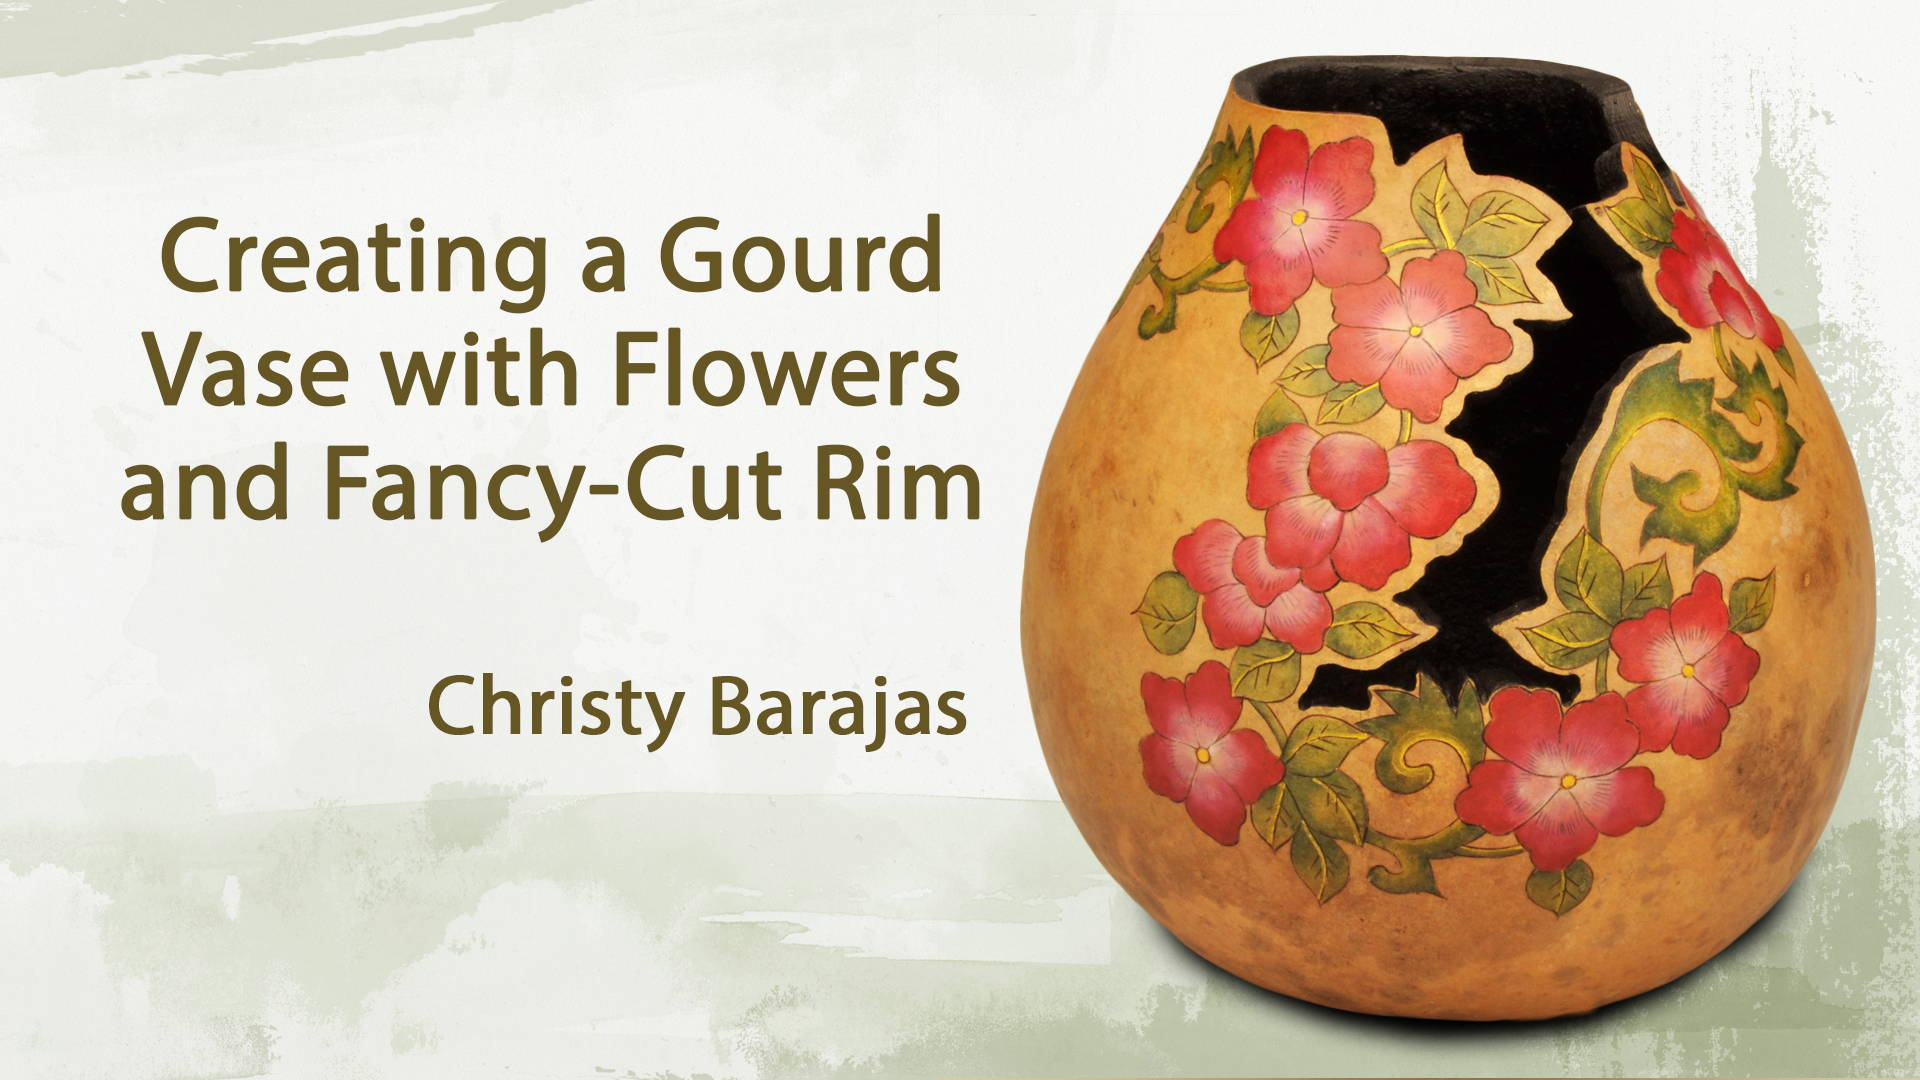 Creating a Gourd Vase with Flowers and Fancy-Cut Rim Video